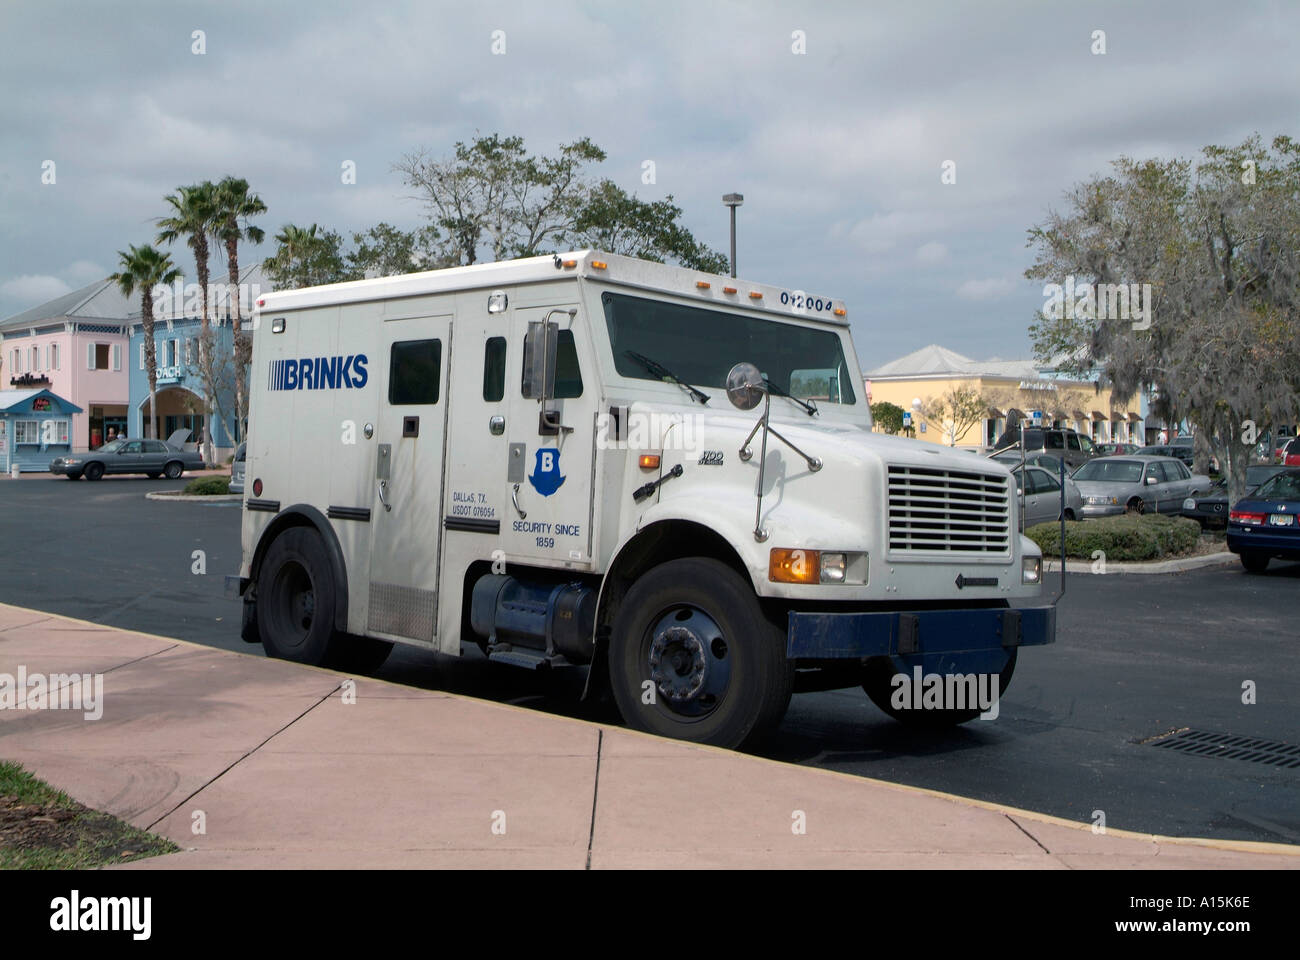 Brinks armored truck outside of tampa florida business picks up deposits from businesses stock image